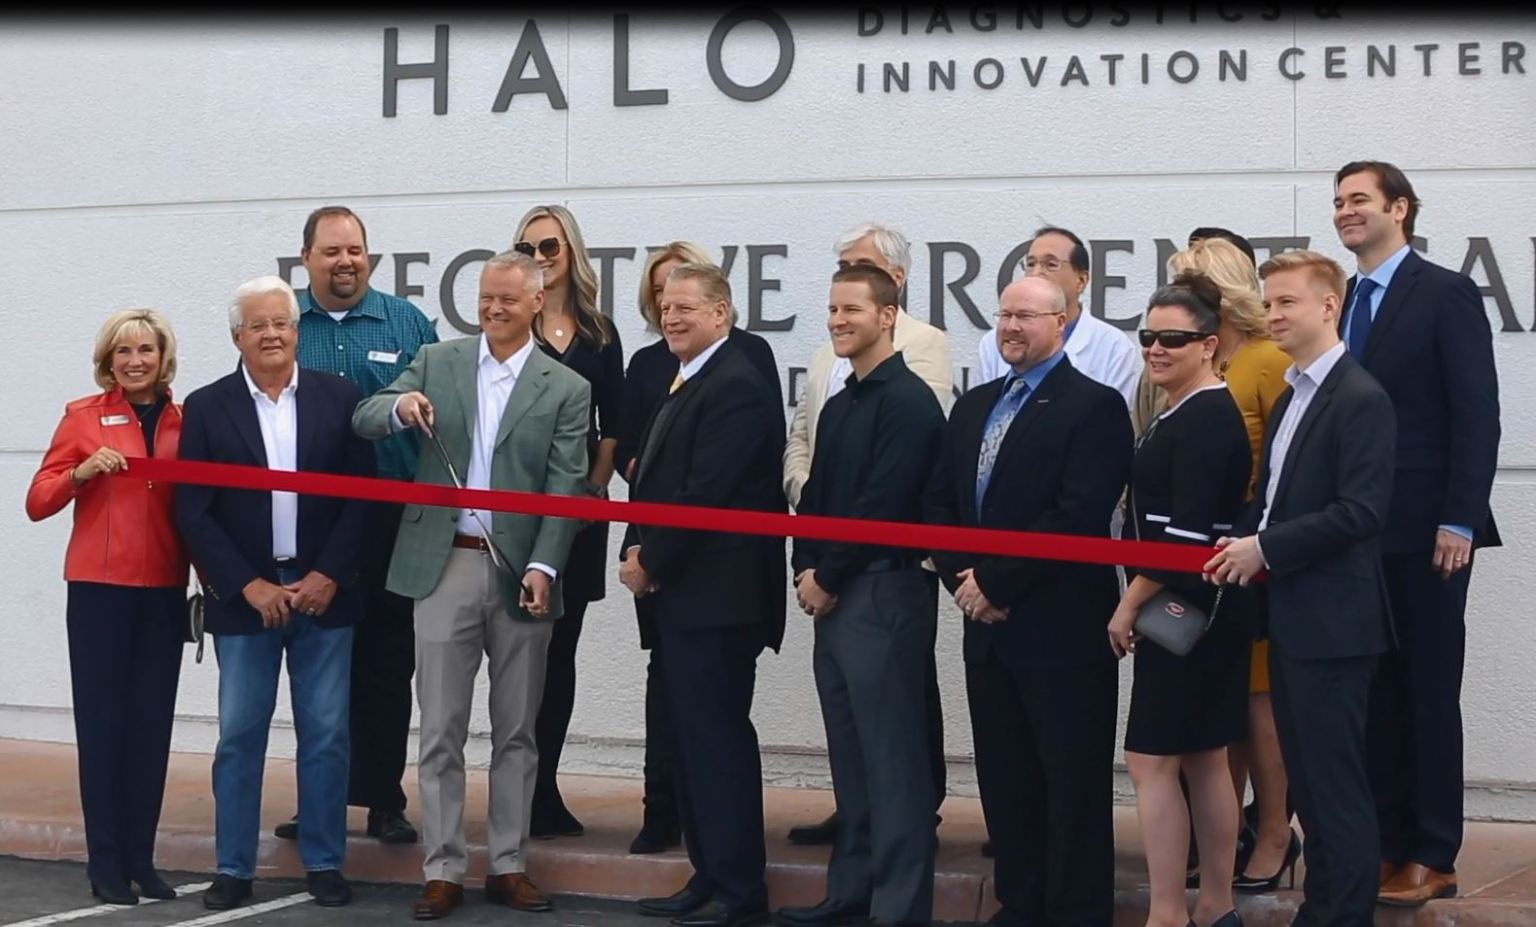 HALO Dx Center Offers Innovative Healthcare to the Coachella Valley